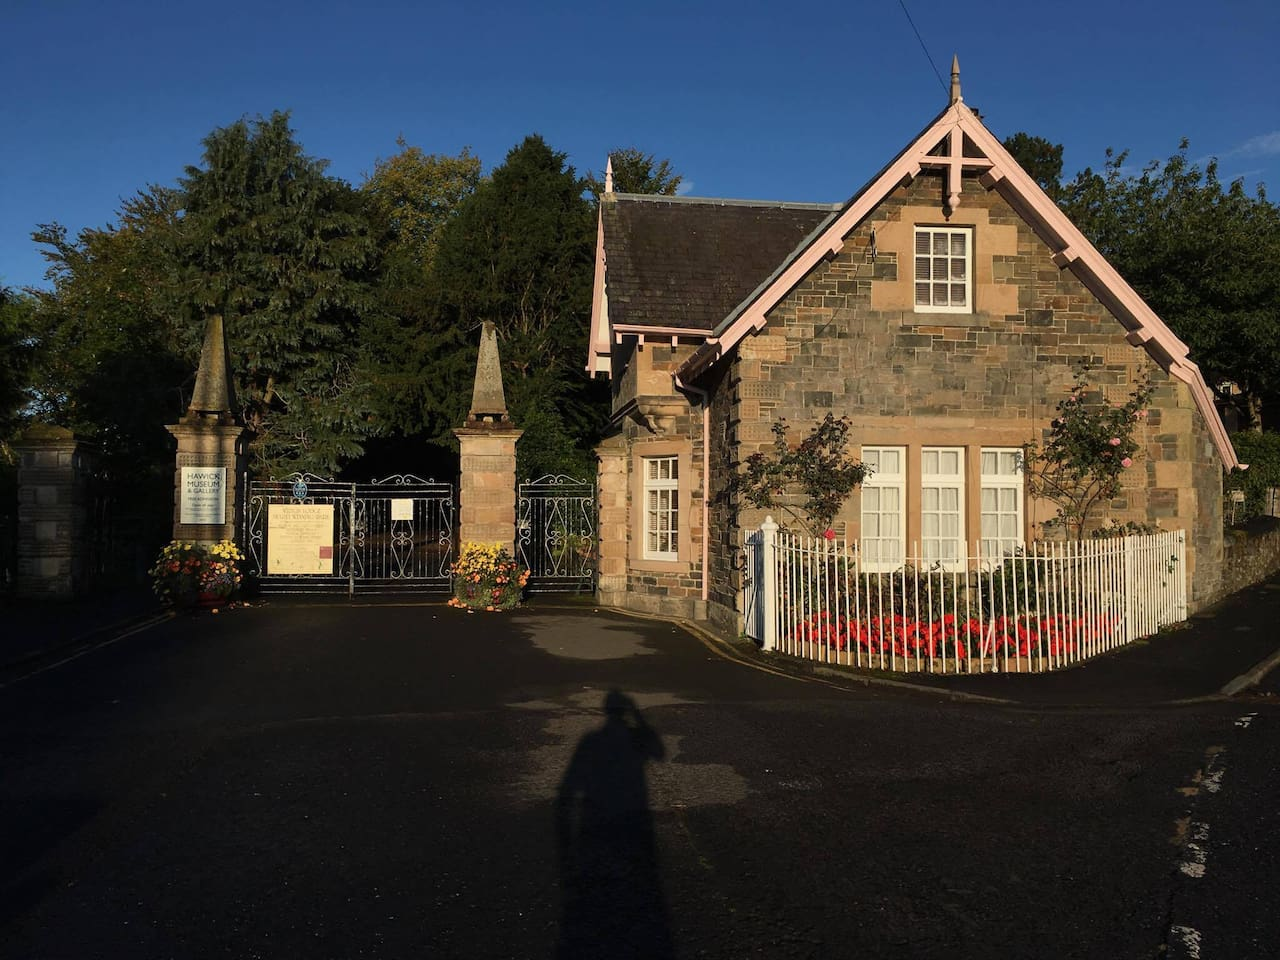 Entrance Lodge is the gatehouse to the famous Wilton Lodge Park of the Scottish Borders